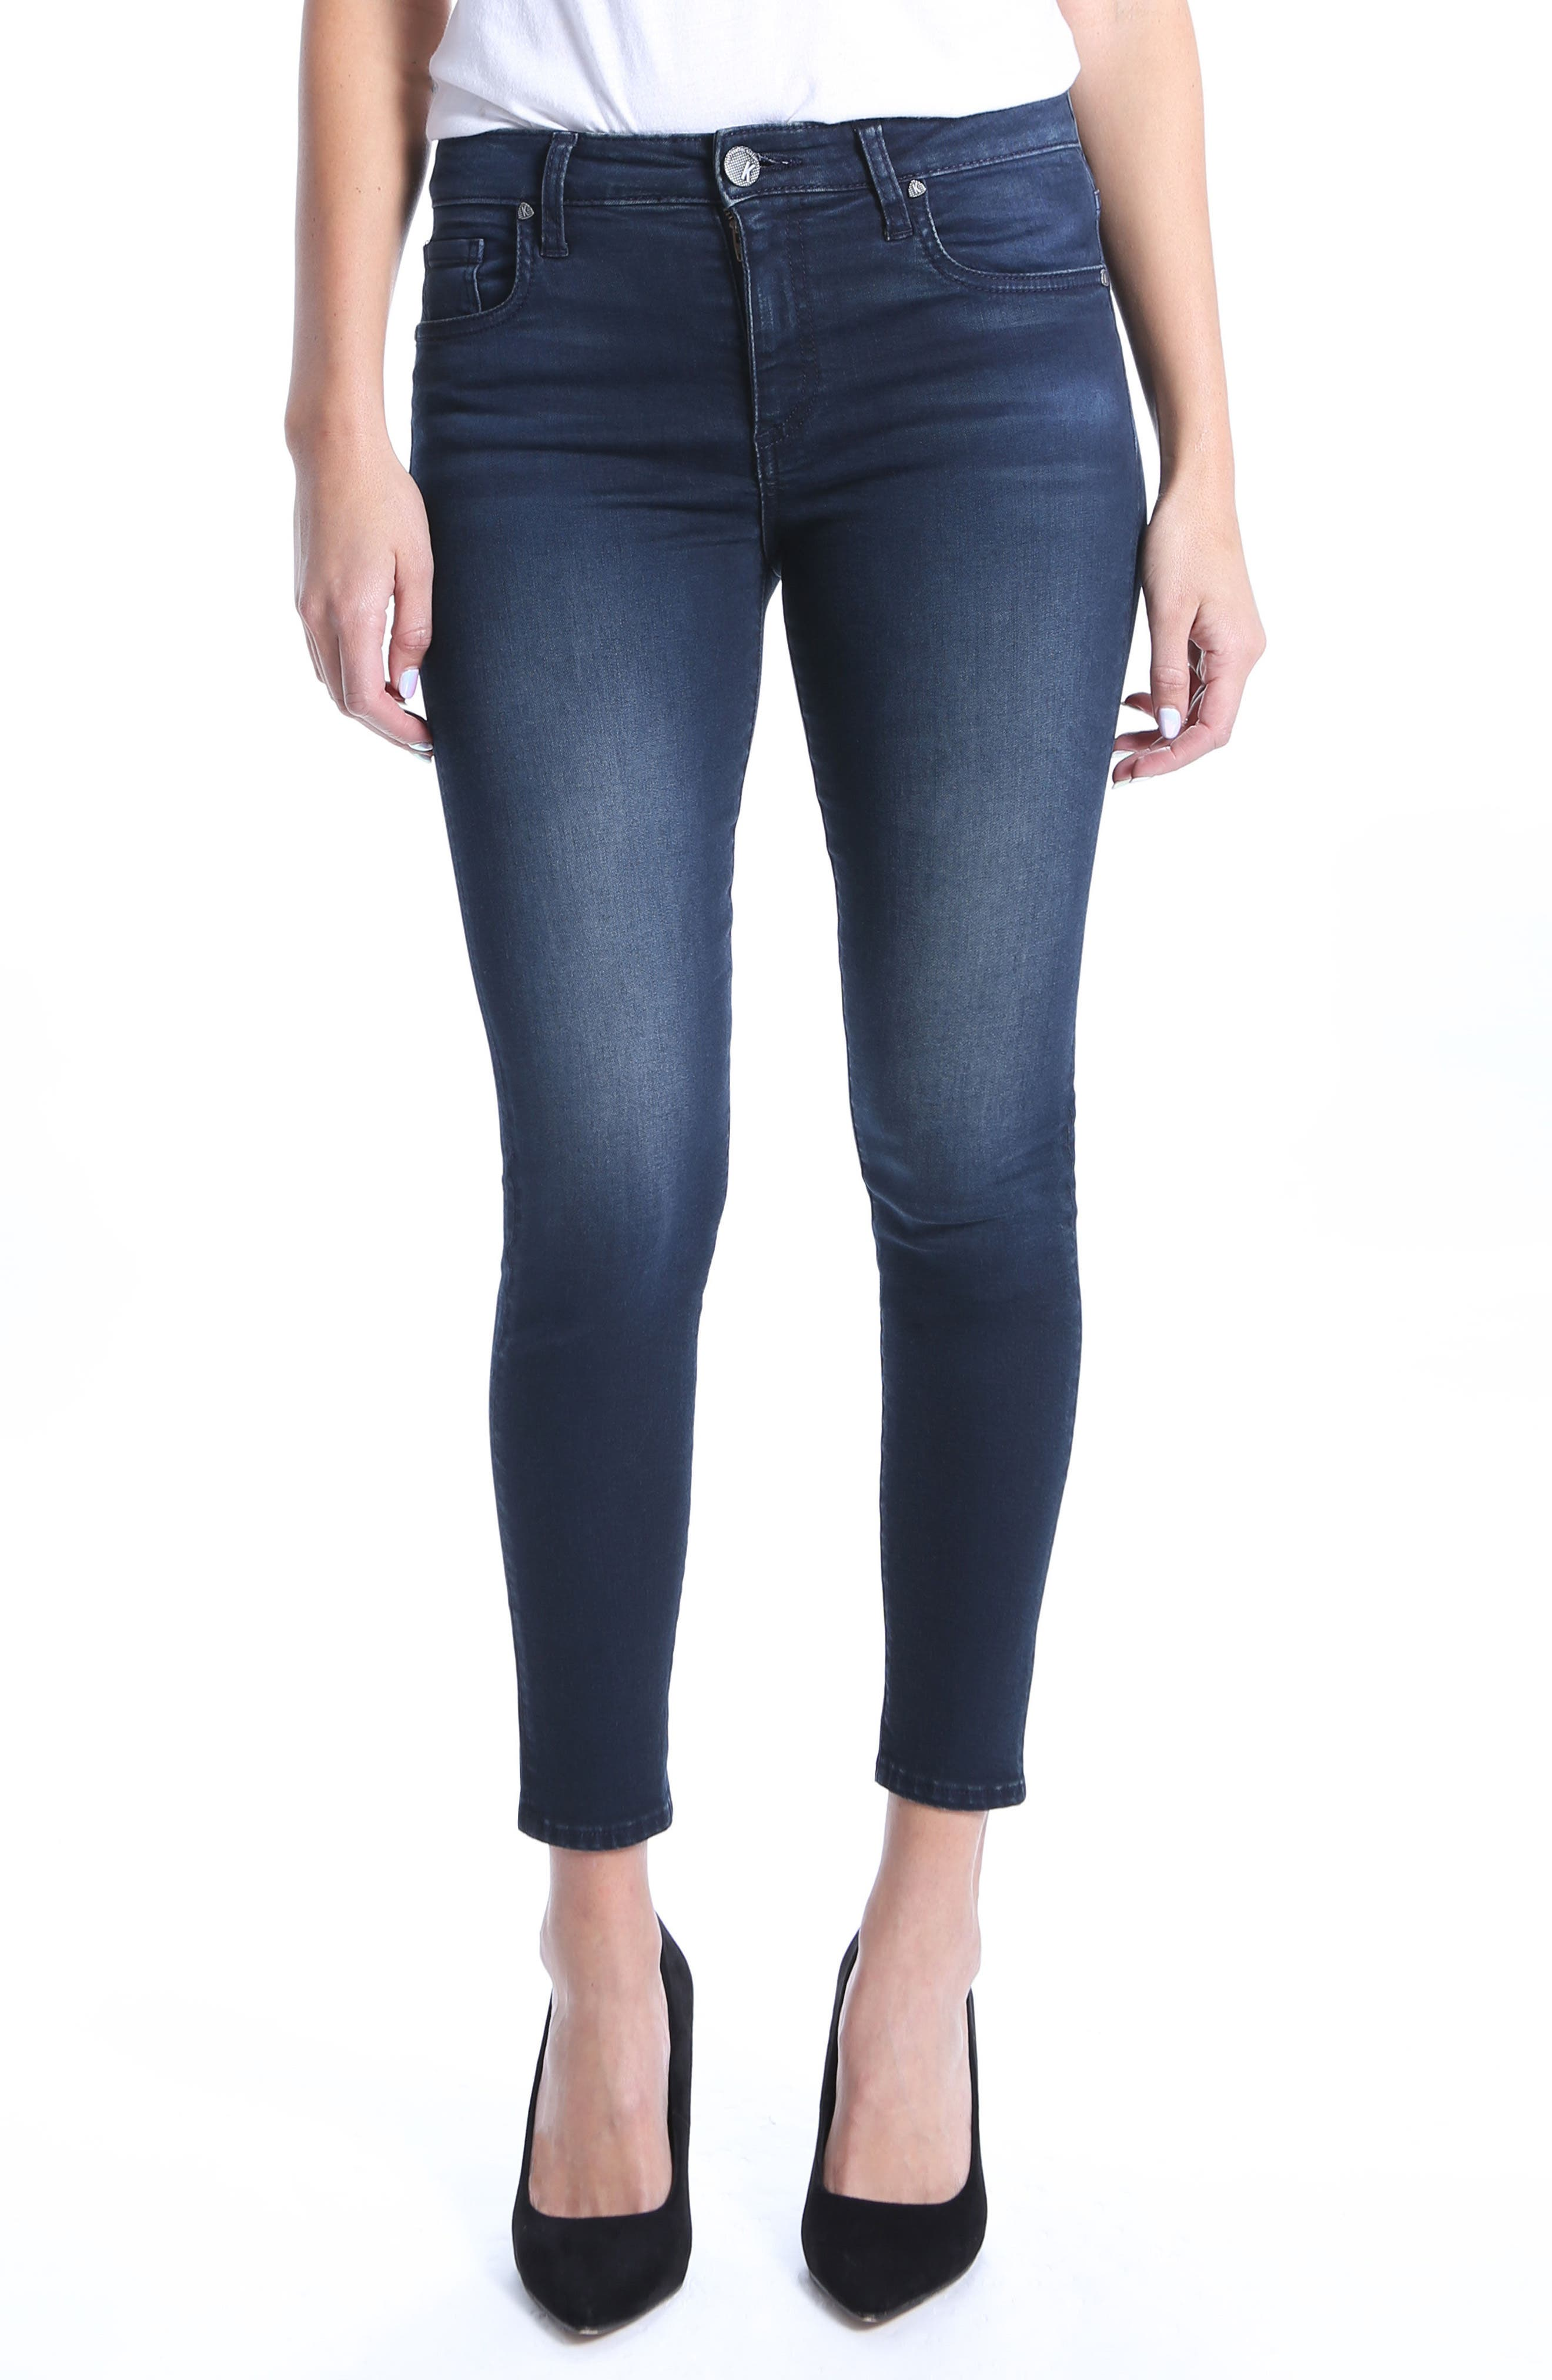 Alternate Image 1 Selected - KUT from the Kloth Donna High Rise Ankle Skinny Jeans (Recognizable)